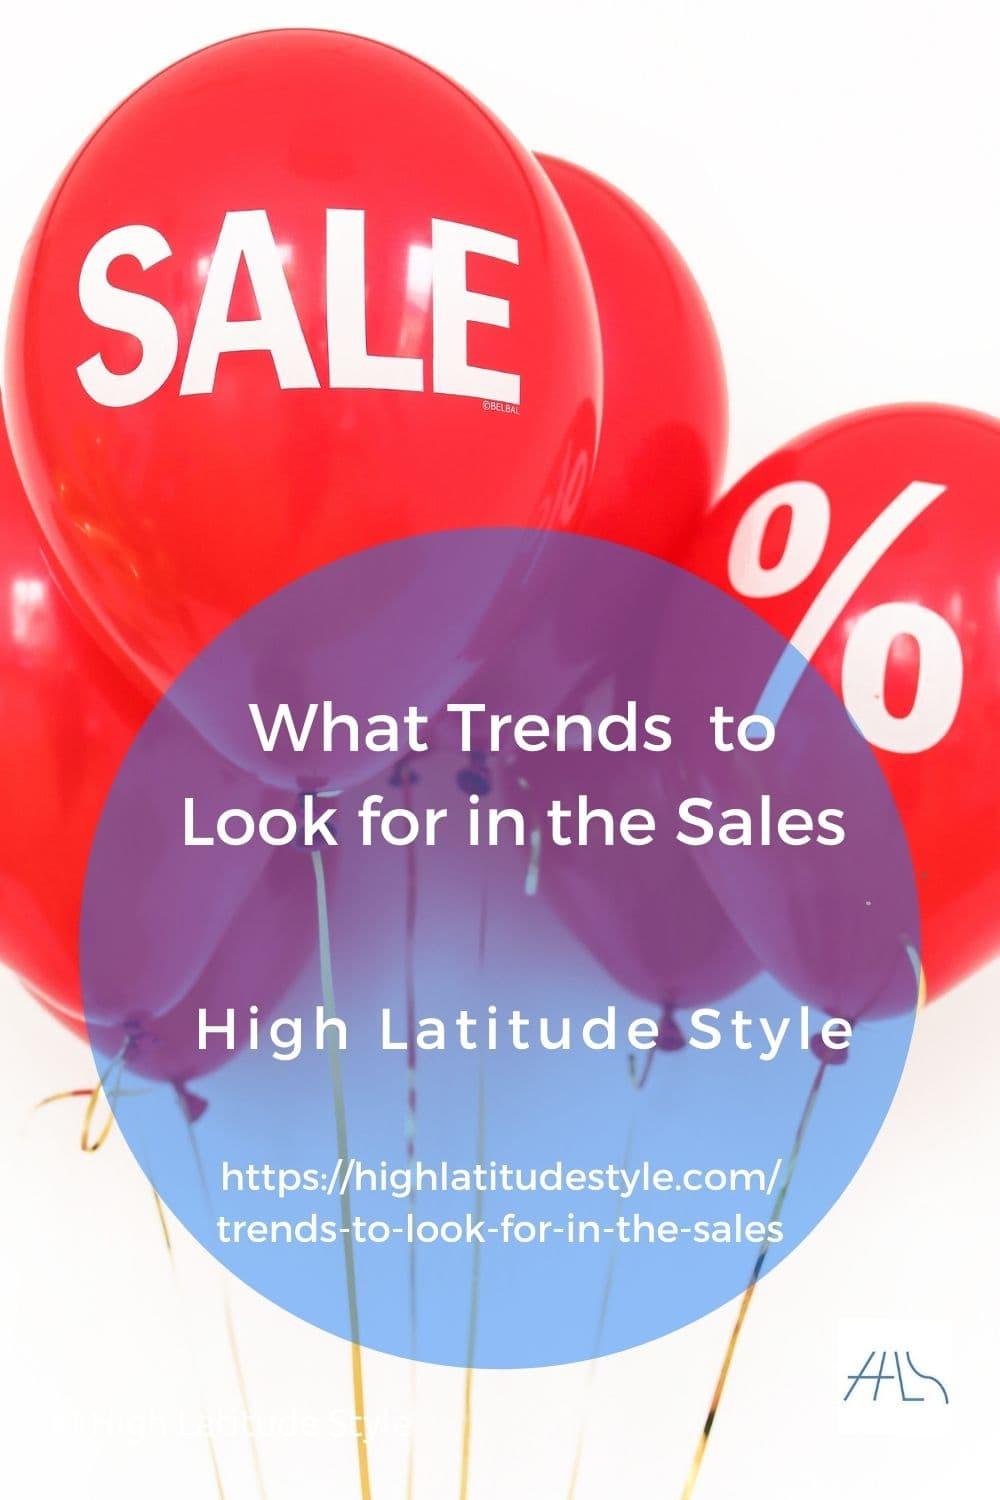 trends post banner showing sales balloons